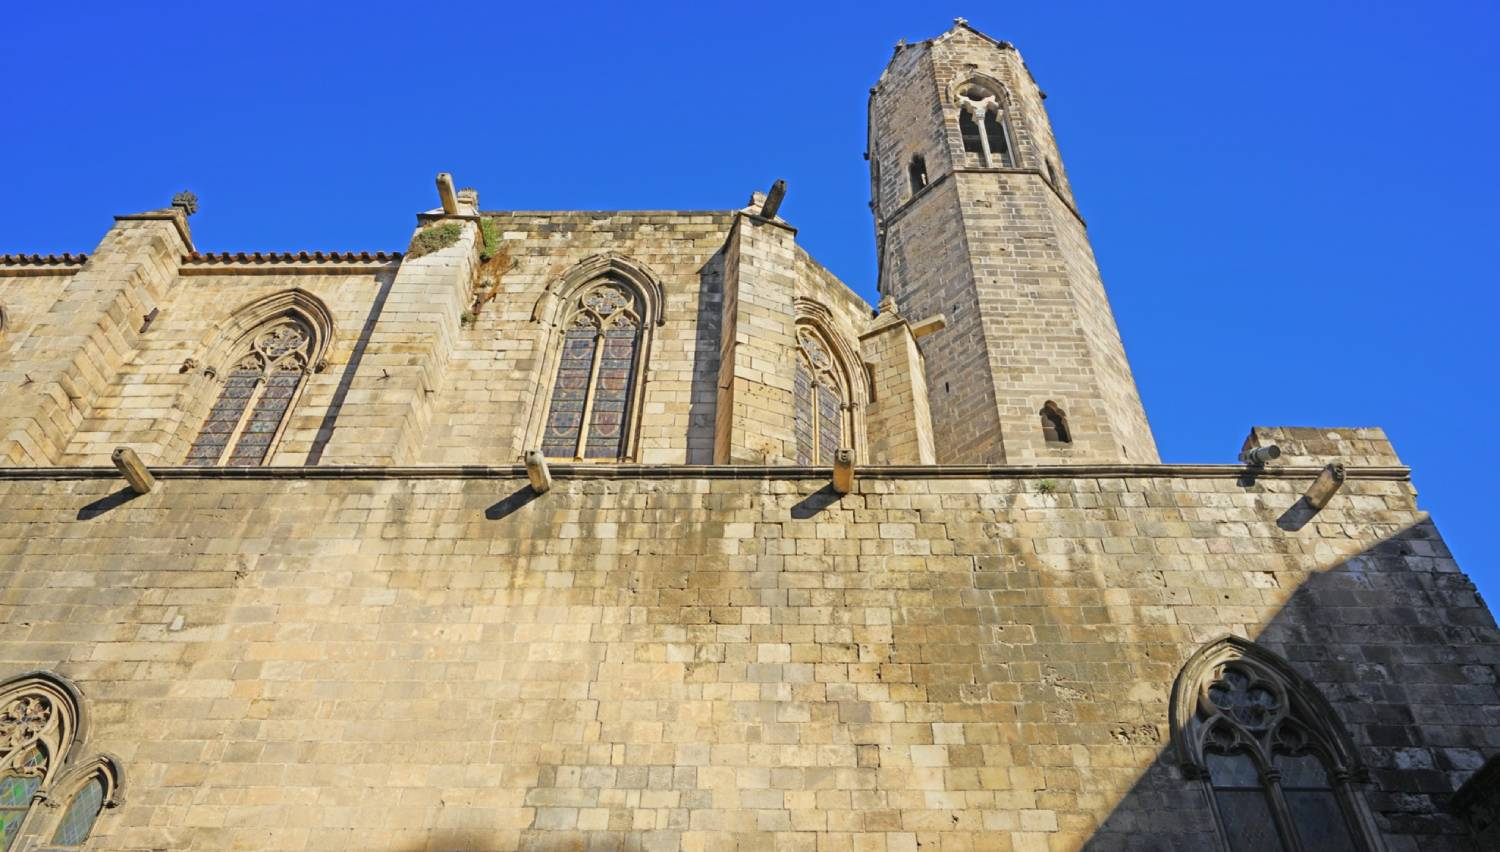 Barcelona City History Museum (MUHBA) - Things To Do In Barcelona